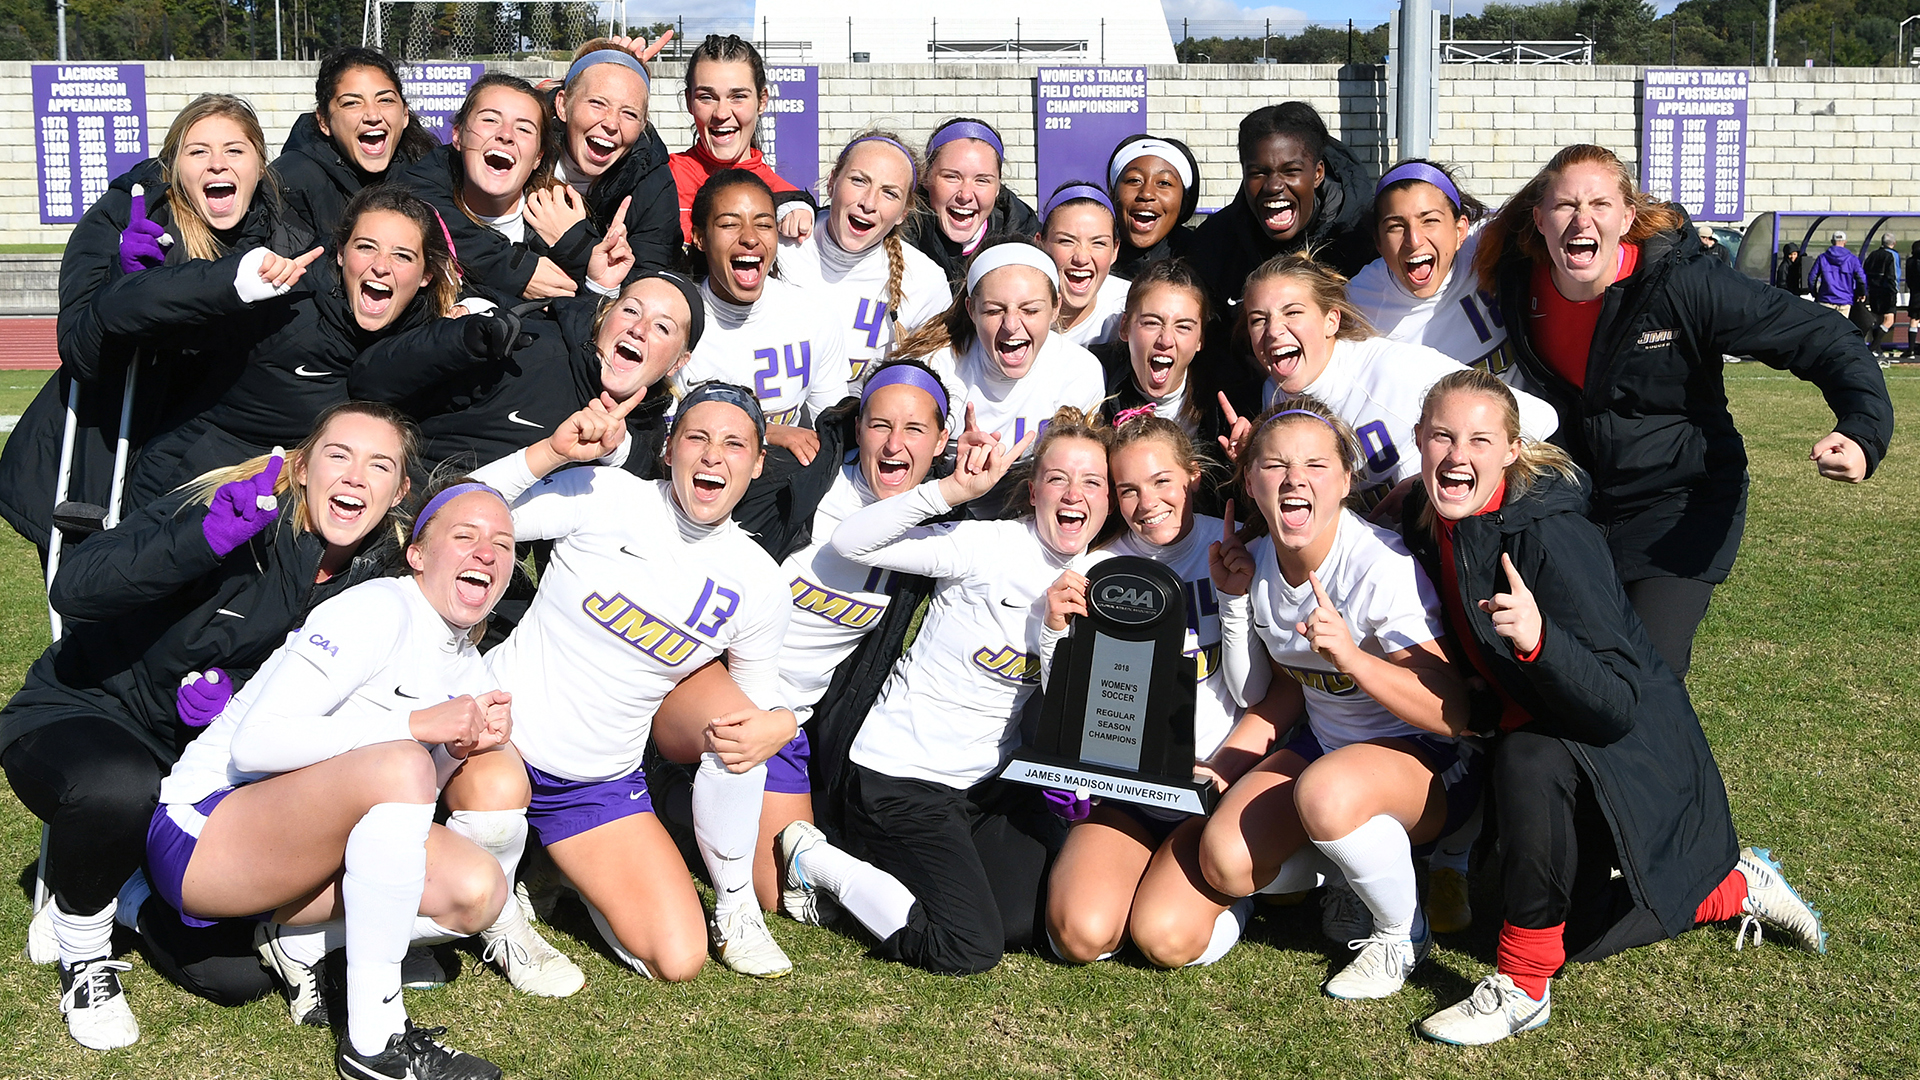 Women's Soccer: Dukes Capture CAA Regular Season Title With Senior Day Draw